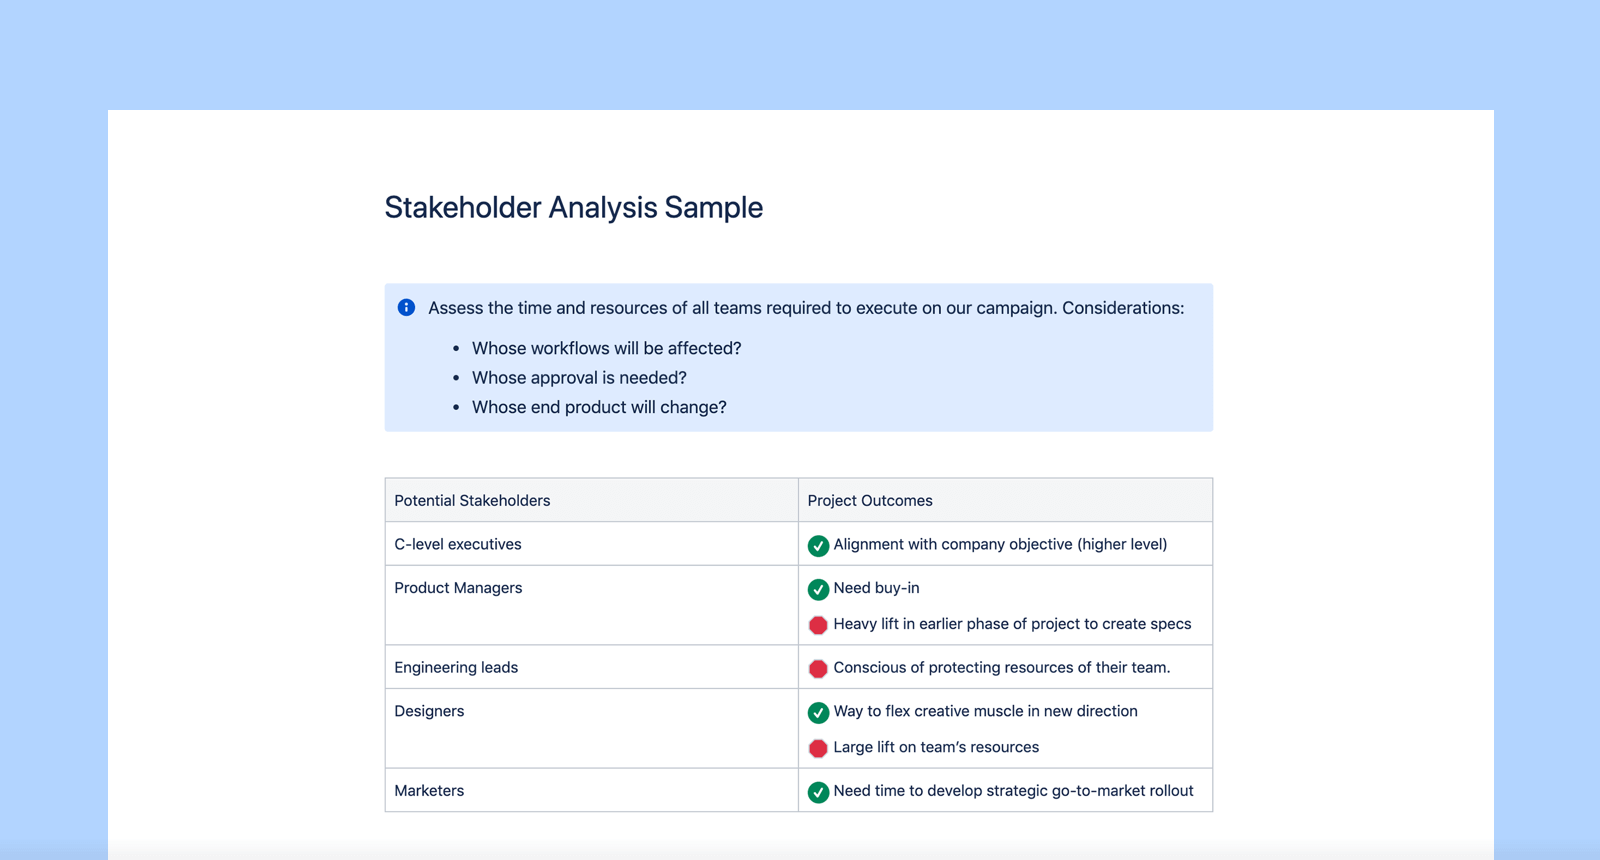 Stakeholder analysis sample